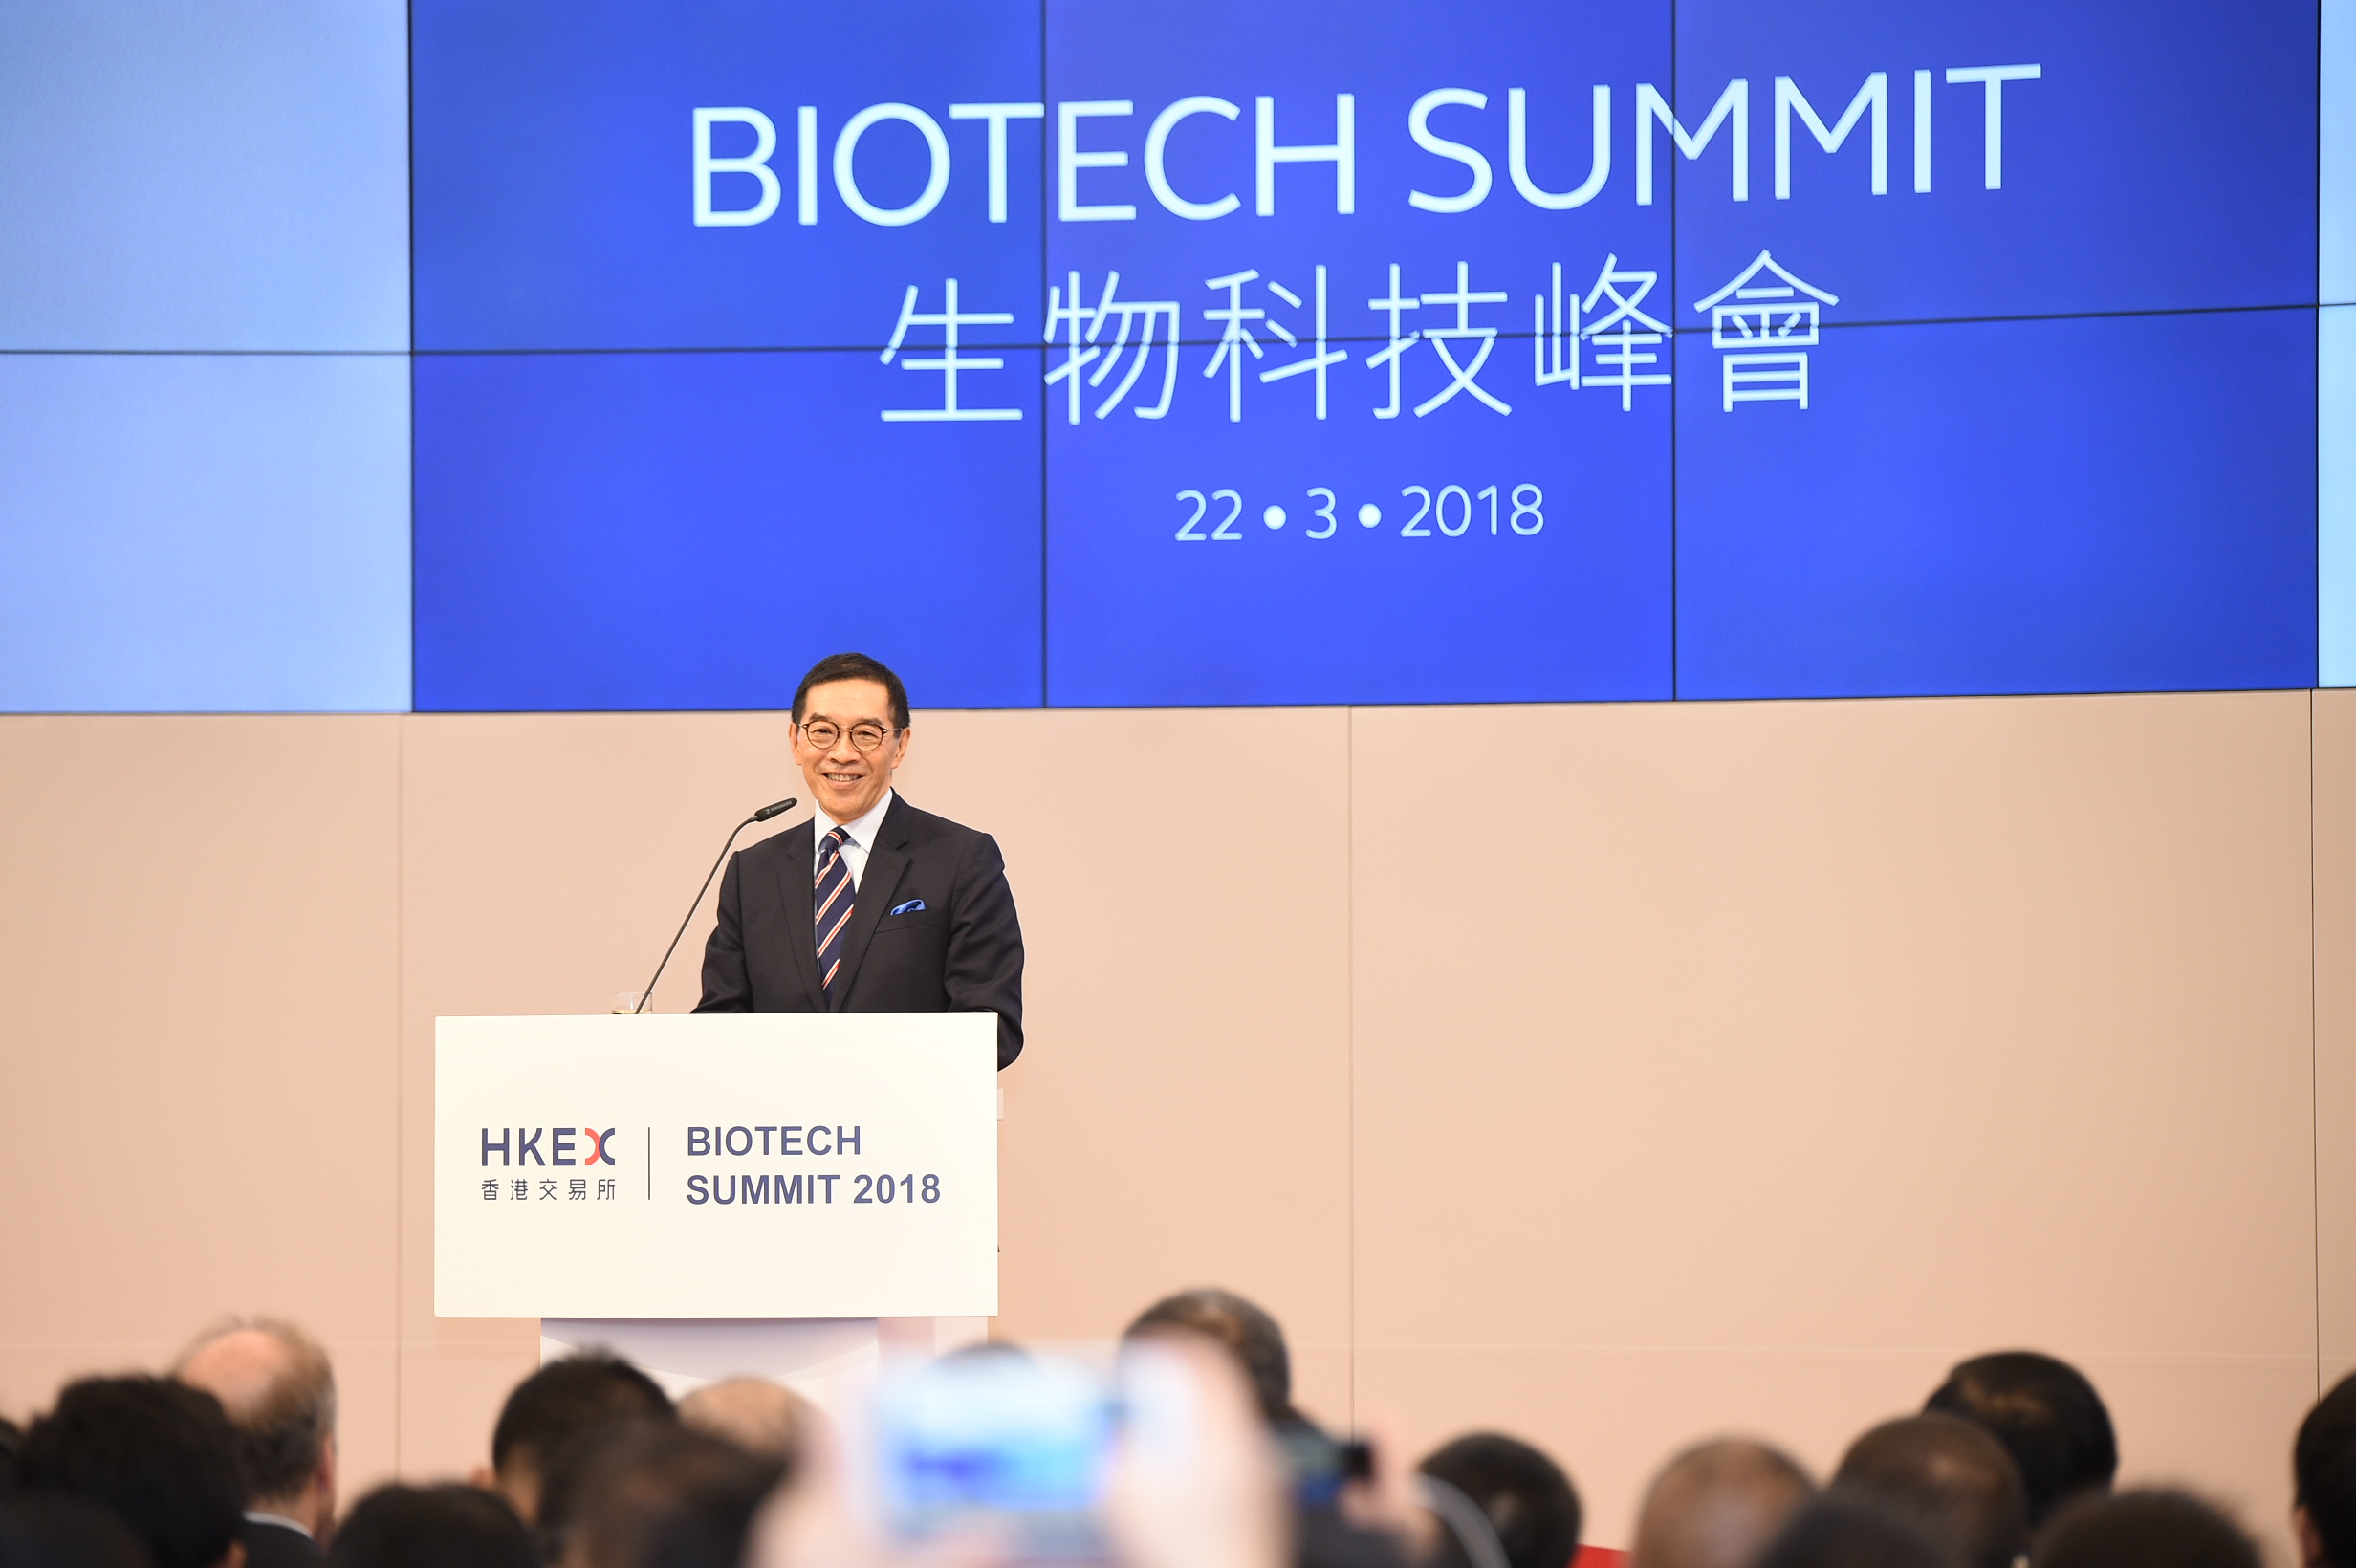 Securities and Futures Commission Chairman Carlson Tong delivering remarks at the HKEX Biotech Summit 2018.